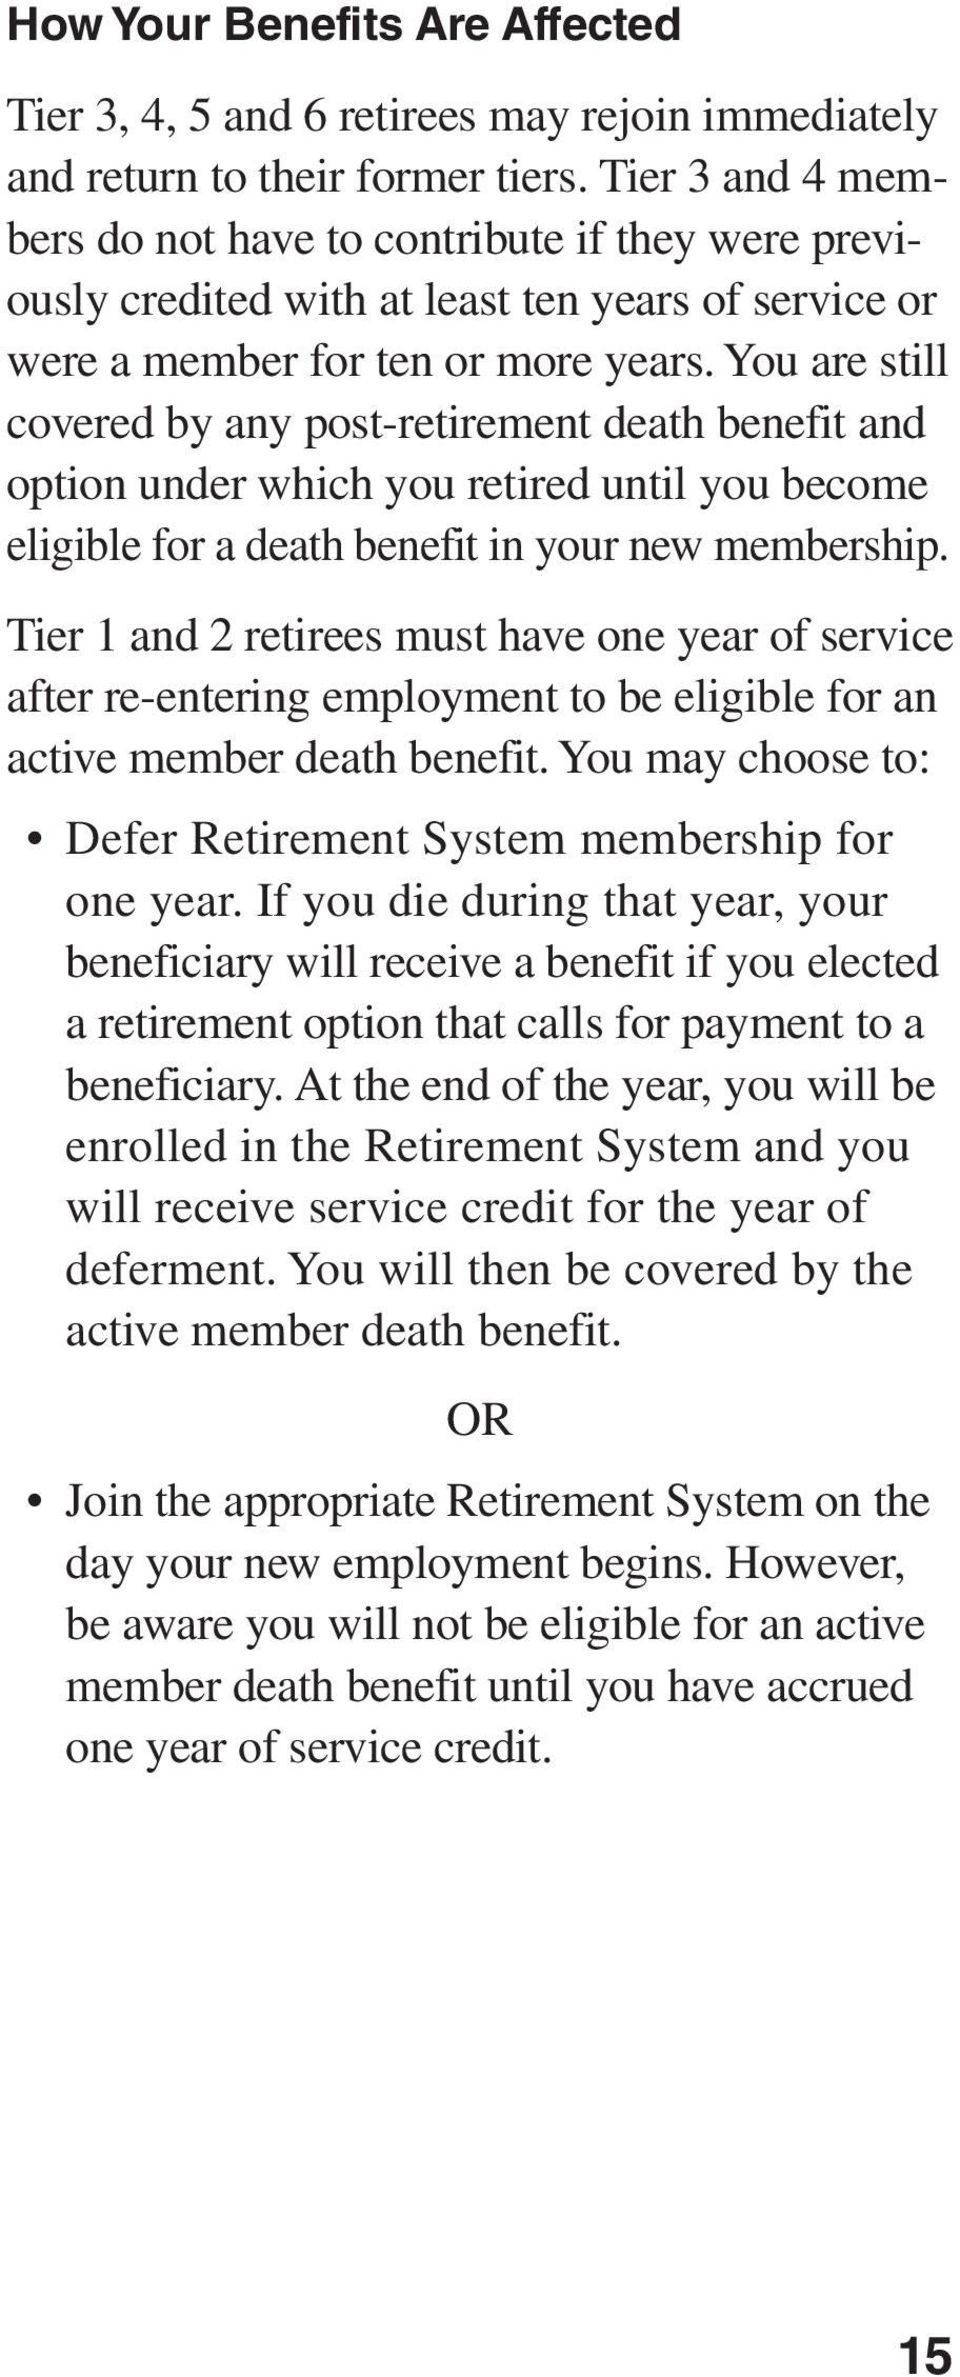 You are still covered by any post-retirement death benefit and option under which you retired until you become eligible for a death benefit in your new membership.